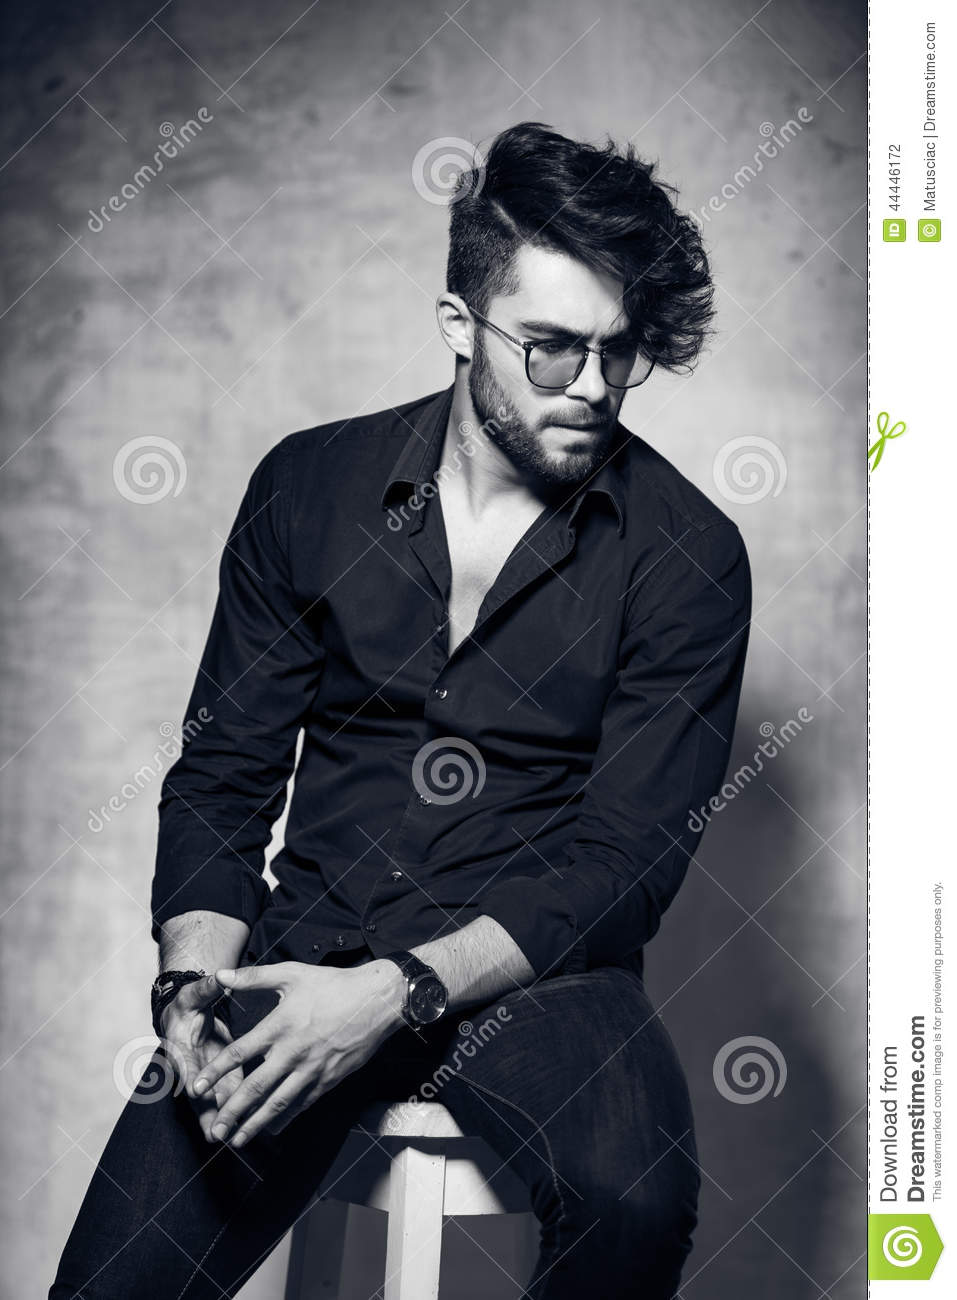 fashion man model dressed casual wearing glasses posing dramatic against grunge wall stock photo. Black Bedroom Furniture Sets. Home Design Ideas